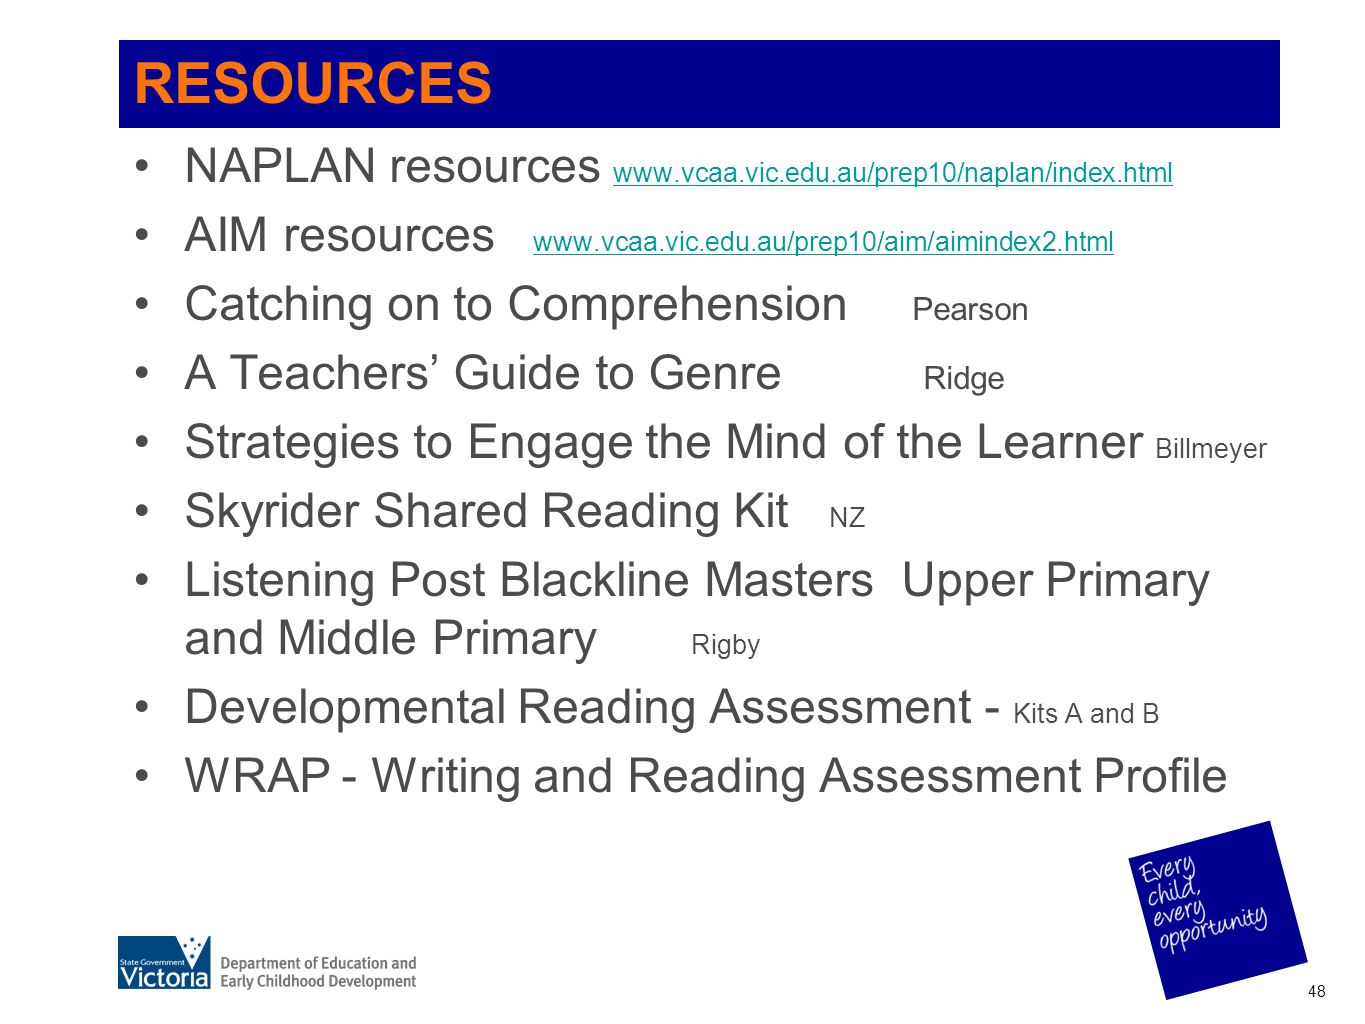 RESOURCES NAPLAN resources www.vcaa.vic.edu.au/prep10/naplan/index.html. AIM resources www.vcaa.vic.edu.au/prep10/aim/aimindex2.html.